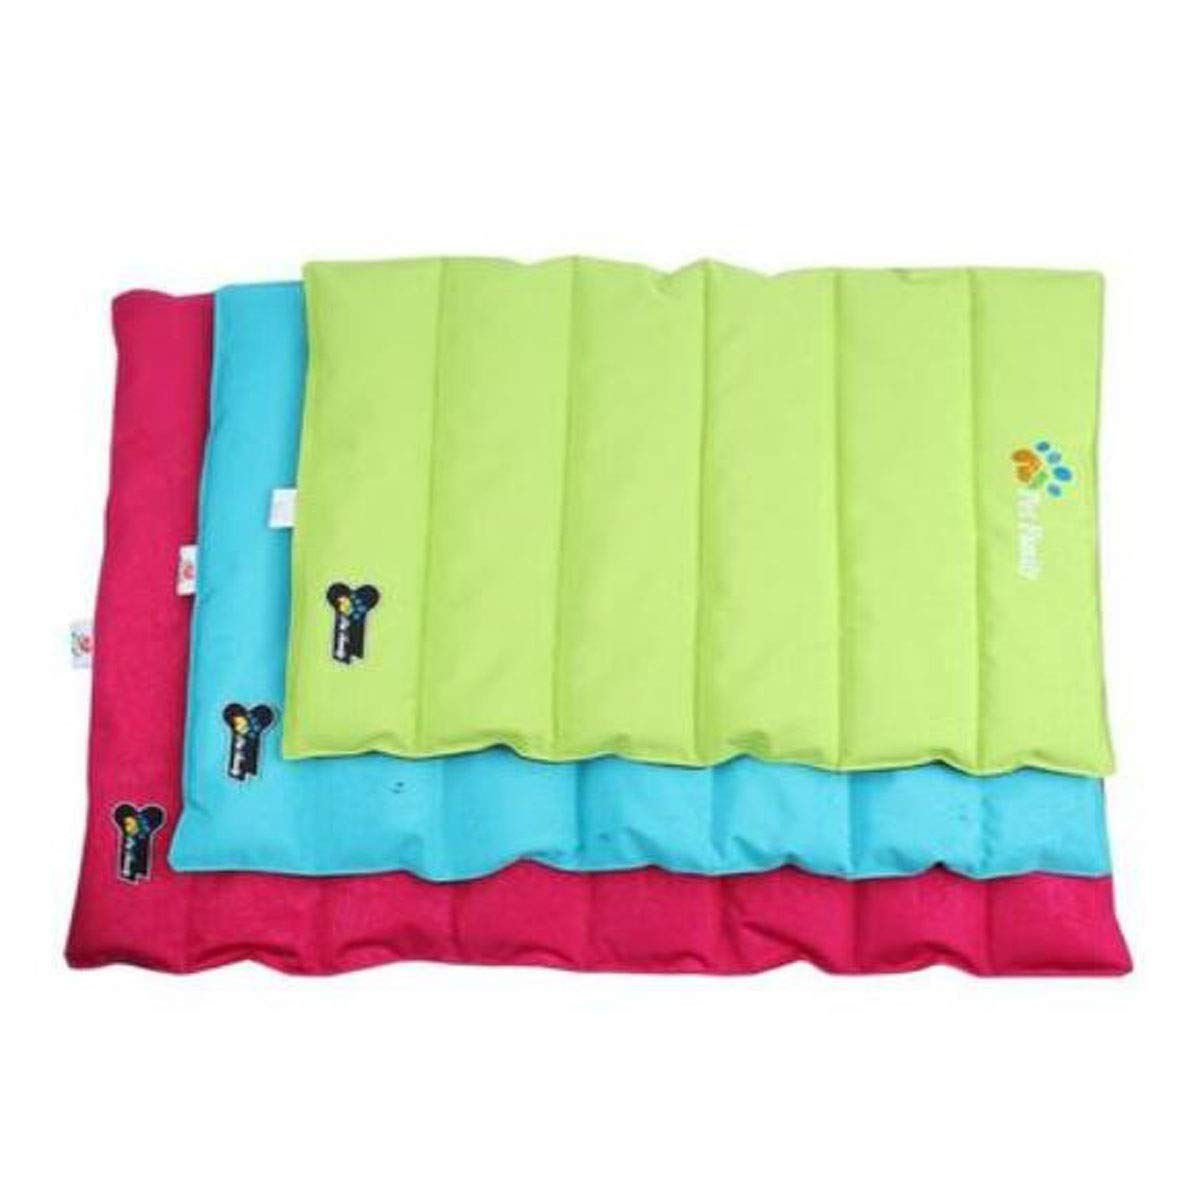 Red S Red S Dog Bed, Dog Cooling Bed, Summer Dog Cooling Pad, Ultra-Thin Cooling Artifact for Sofa Floor Car Sleeping Pad Foldable, Red Green bluee Pink L (color   Red, Size   S)